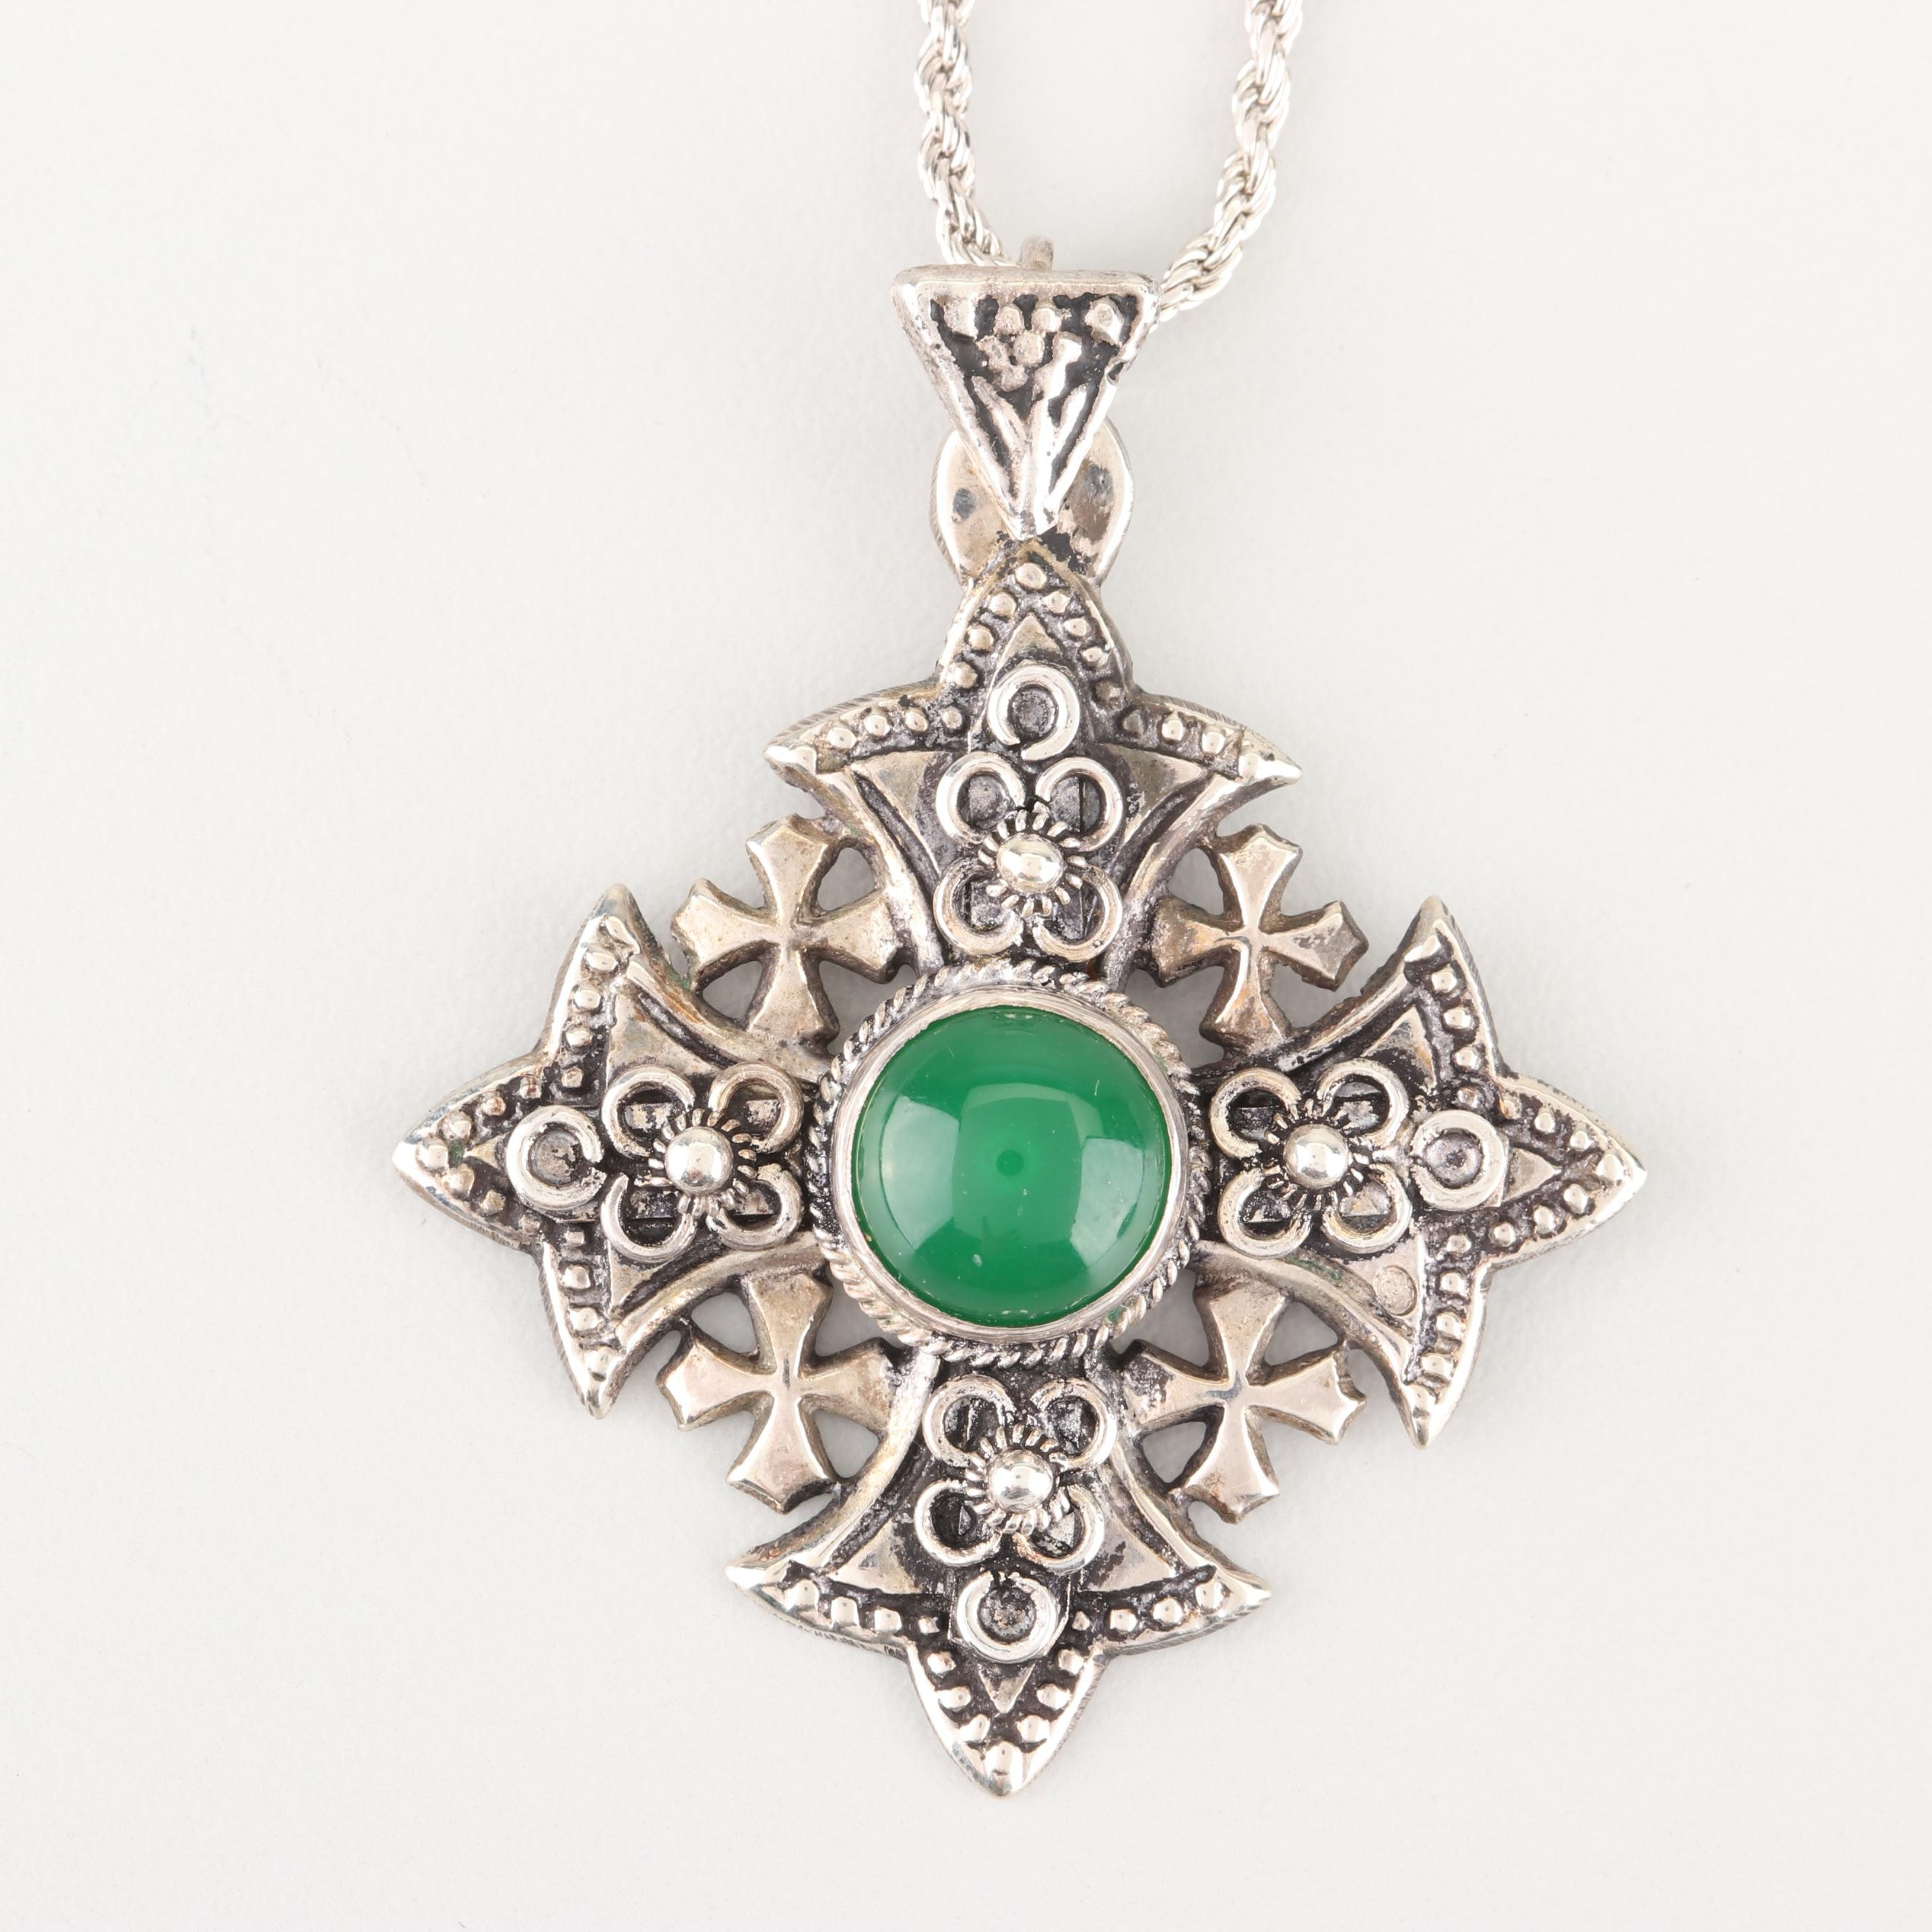 Necklace with Sterling Silver Chain and 900 Silver and Chalcedony Pendant